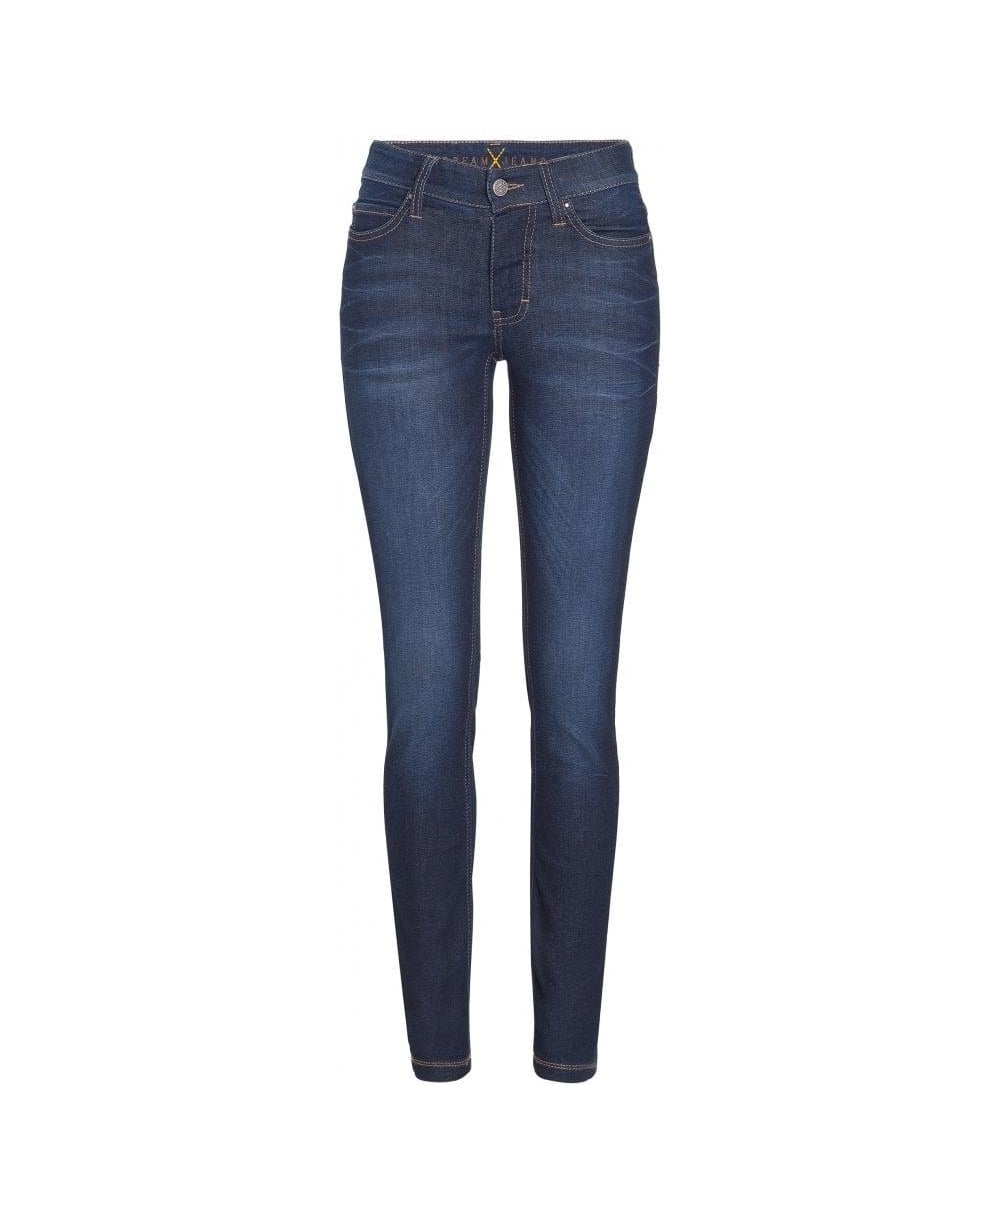 MAC TROUSERS dream skinny jean JLIMXXZ